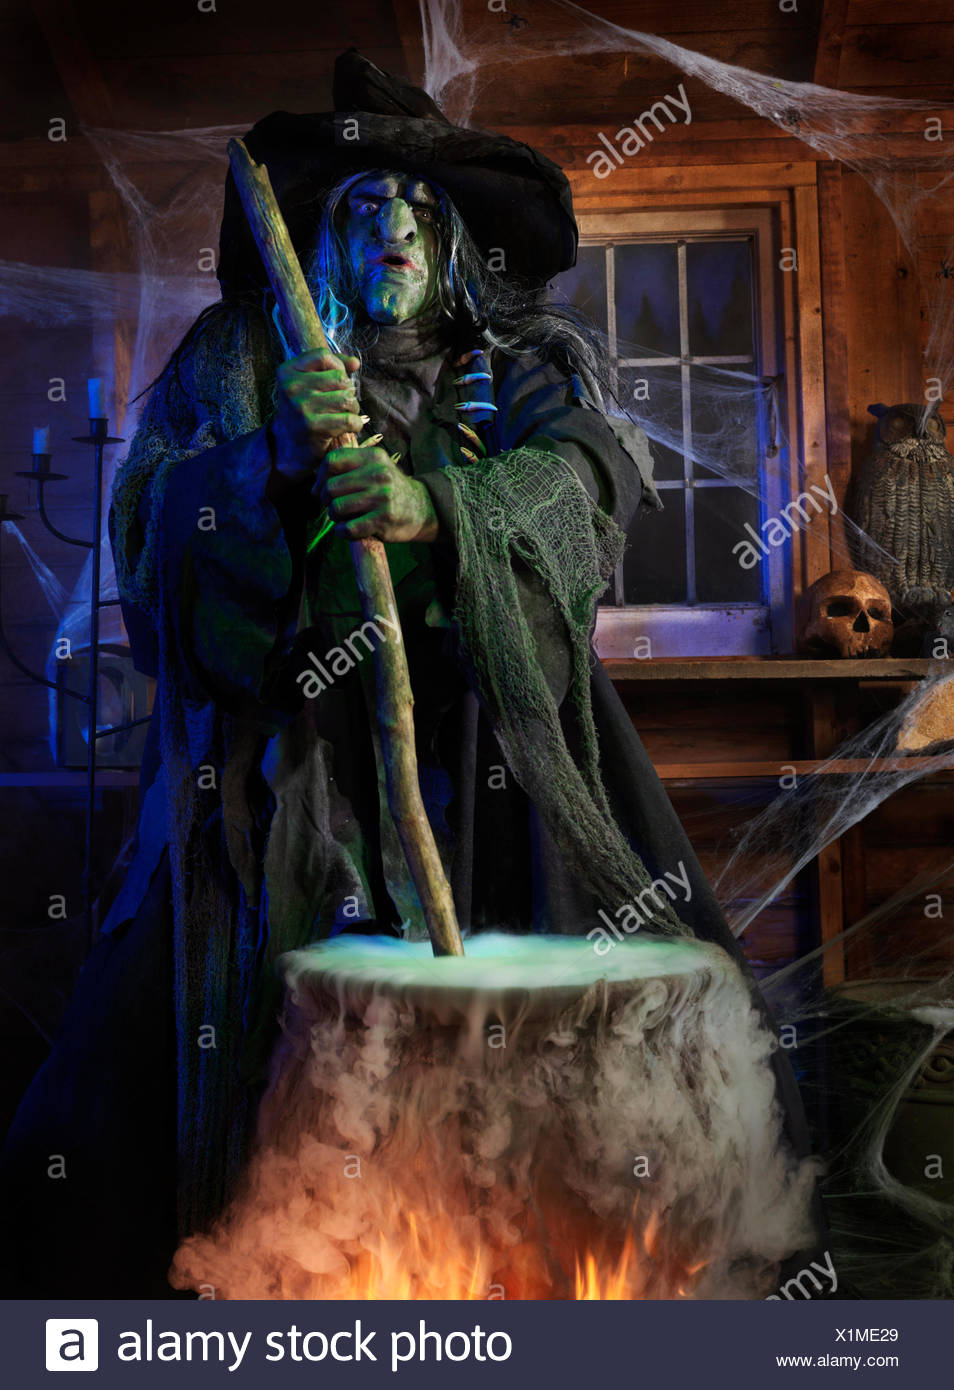 Scary old witch stirring potion in a cauldron inside her cabin on Halloween - Stock Image